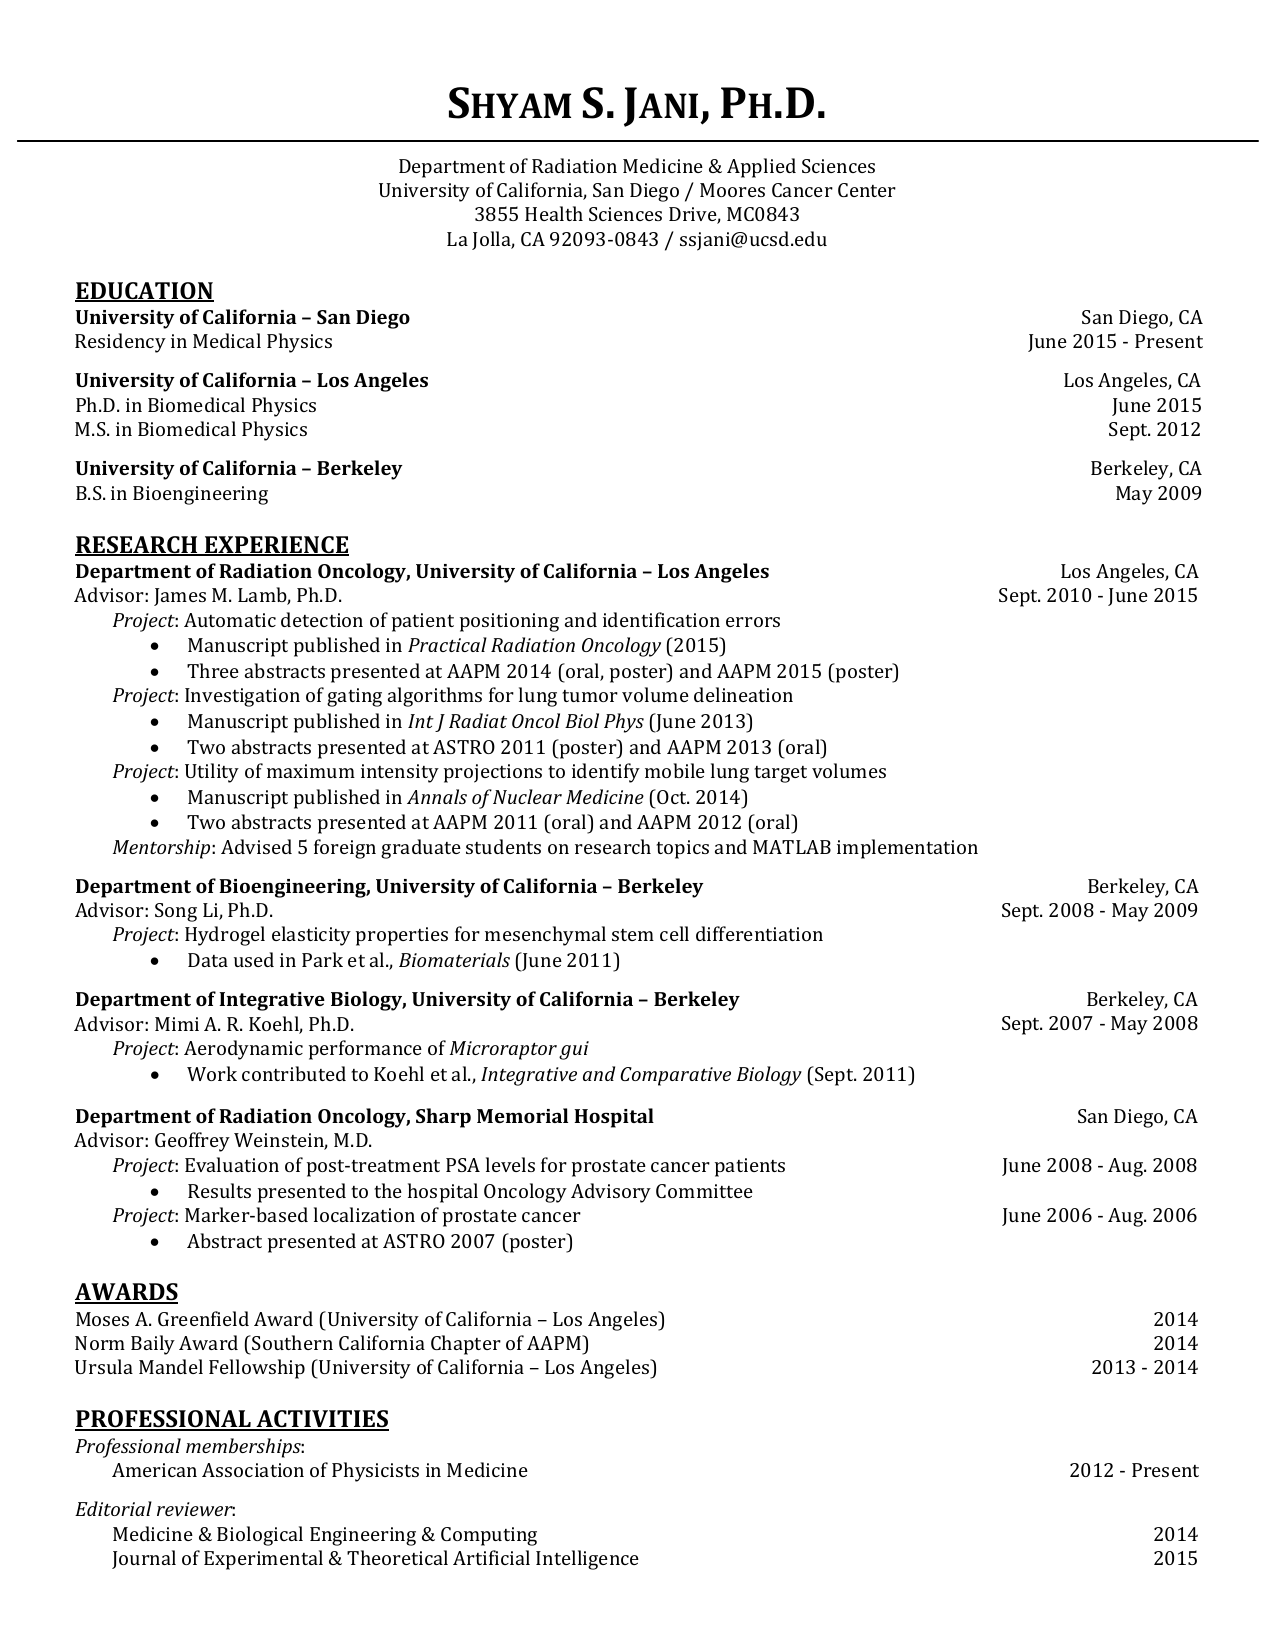 CV - UC San Diego Health Sciences - University of California